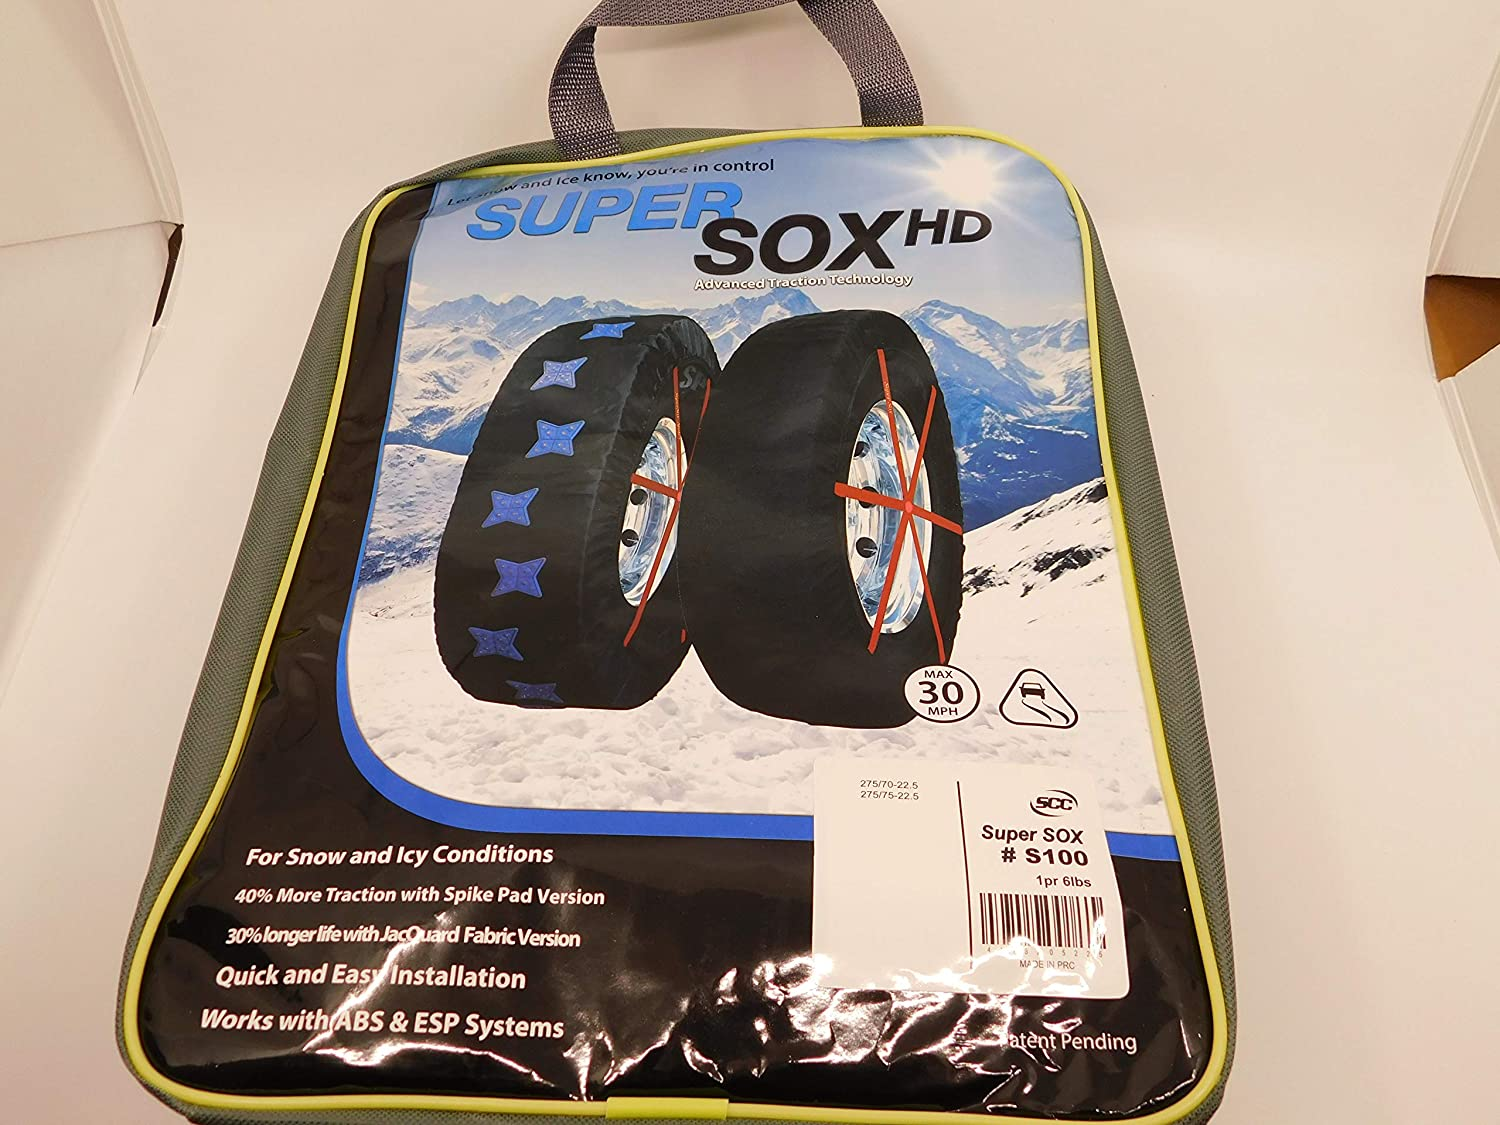 275//80-22 Peerless S200 Supersox with Jacquard Fabric Heavy Duty Commercial Truck Tire Socks for Winter Traction 275//75-22.5 275//70-22.5 295//75-22.5